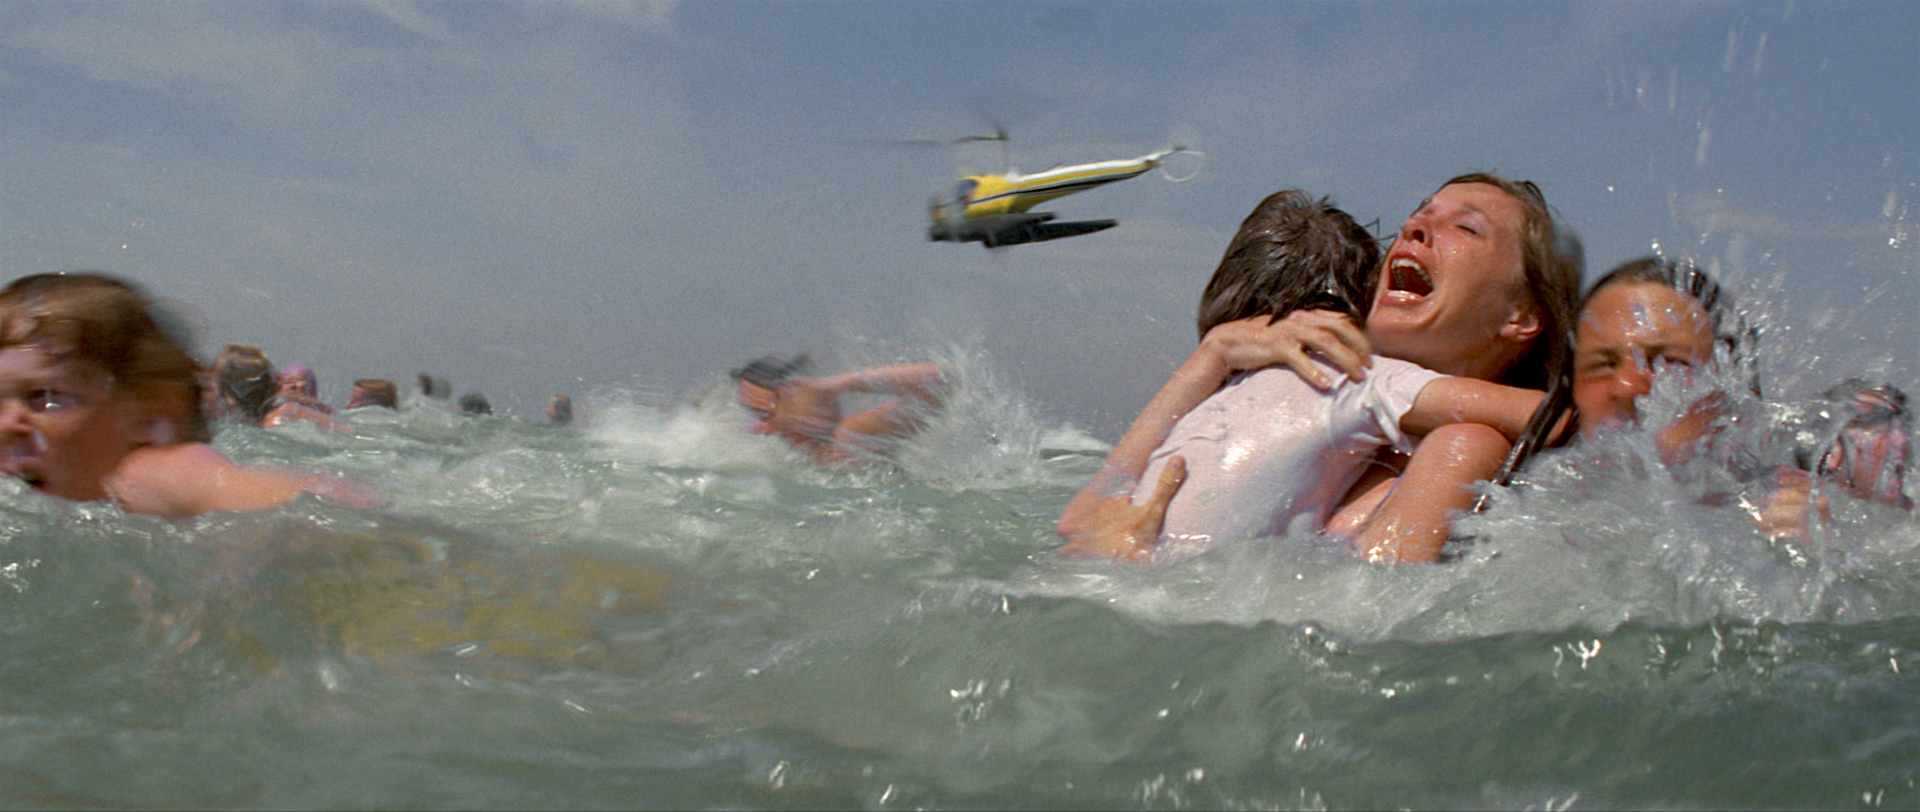 Crowds panic to leave the water including a mother clutching her small child. A yellow helicopter flies overhead.